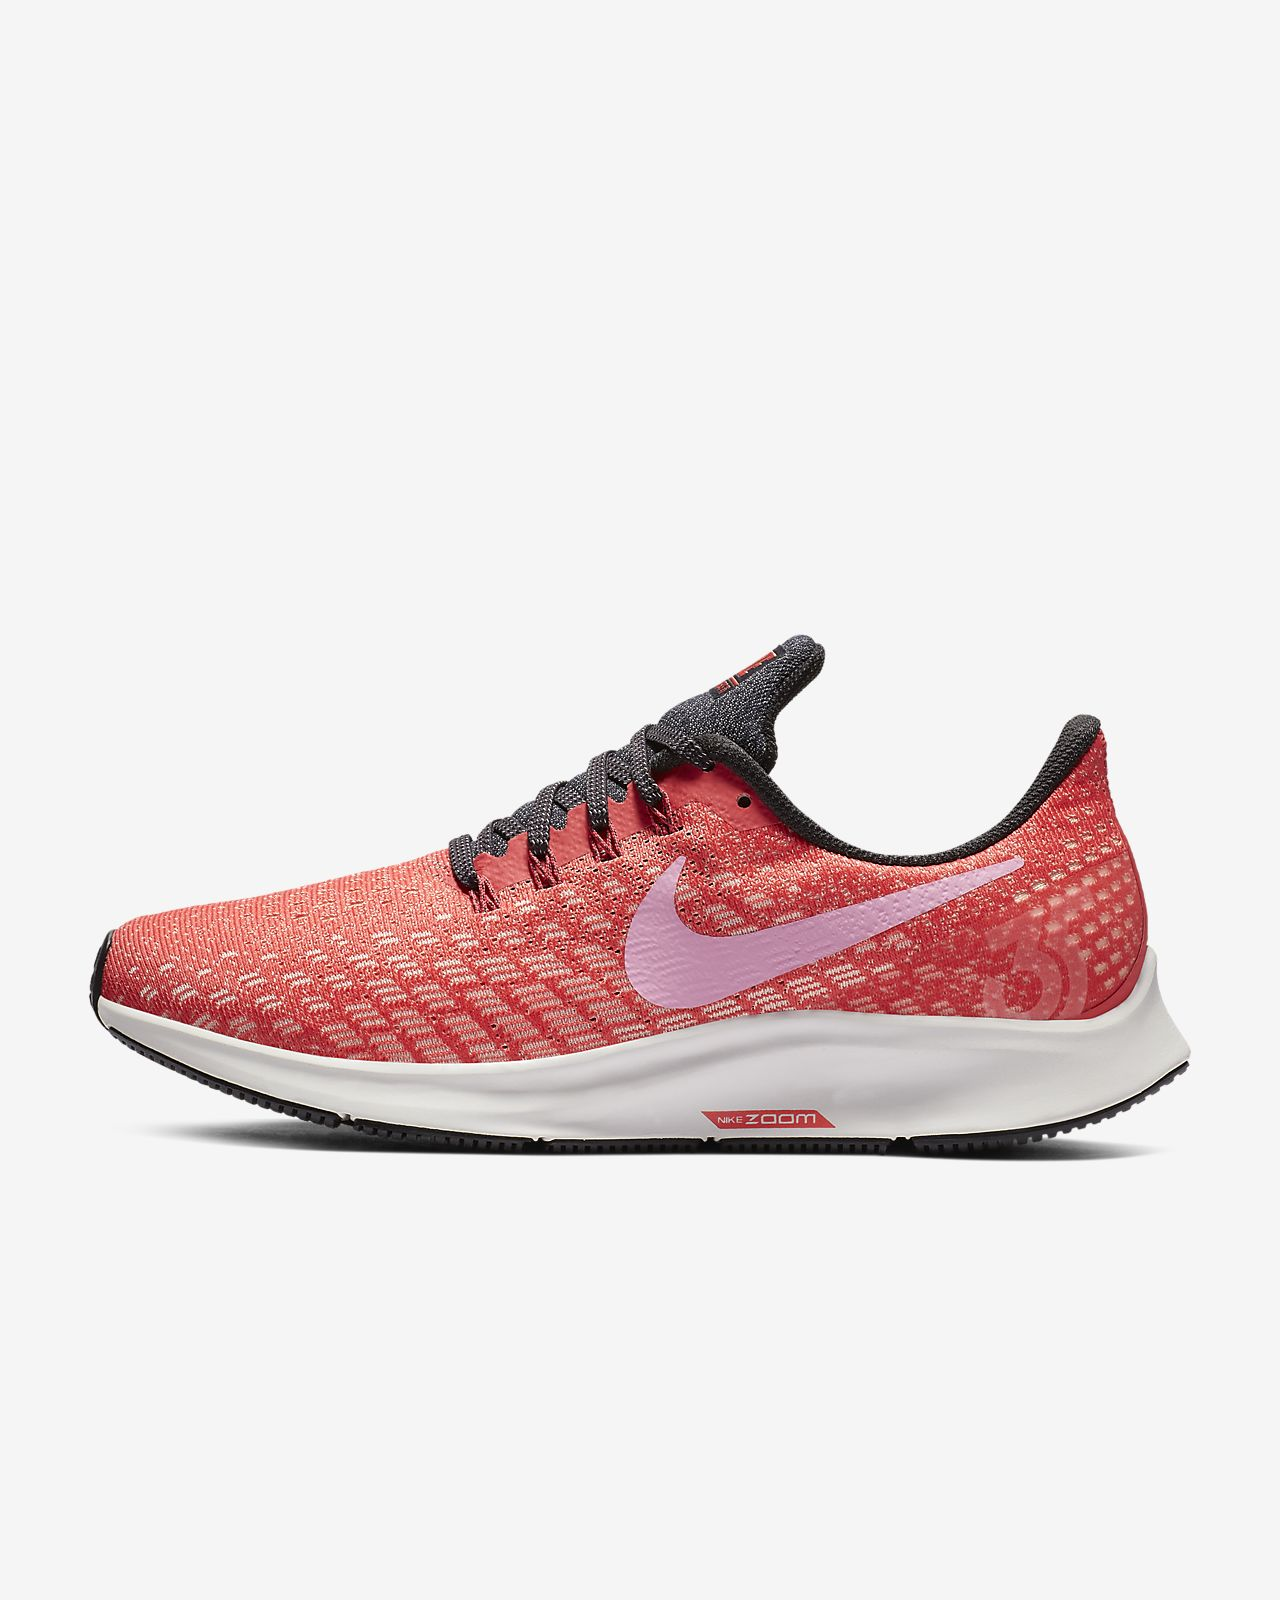 new product 3636a 3f704 ... Chaussure de running Nike Air Zoom Pegasus 35 pour Femme